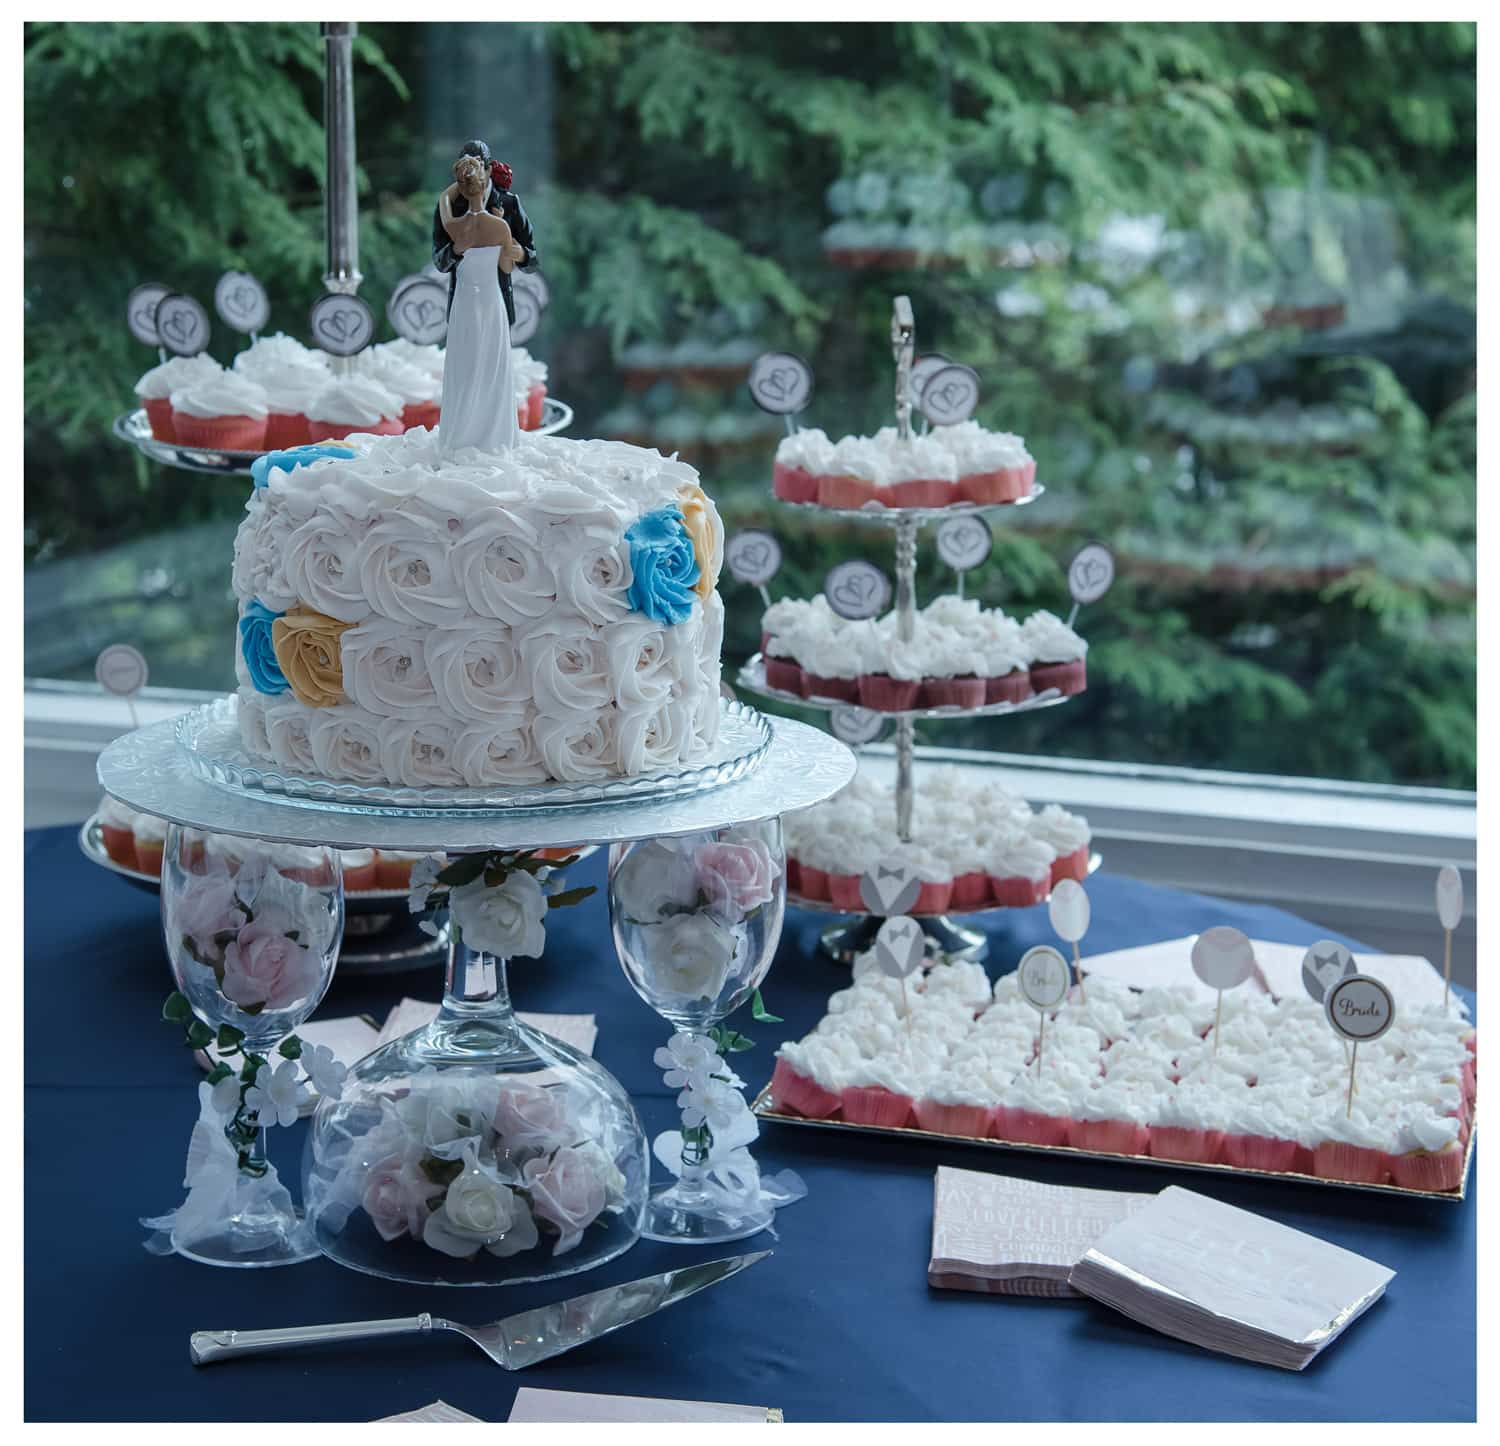 a single tier wedding cake with a bride and groom wedding topper figurine surrounded by wedding cupcakes on a cupcake stand